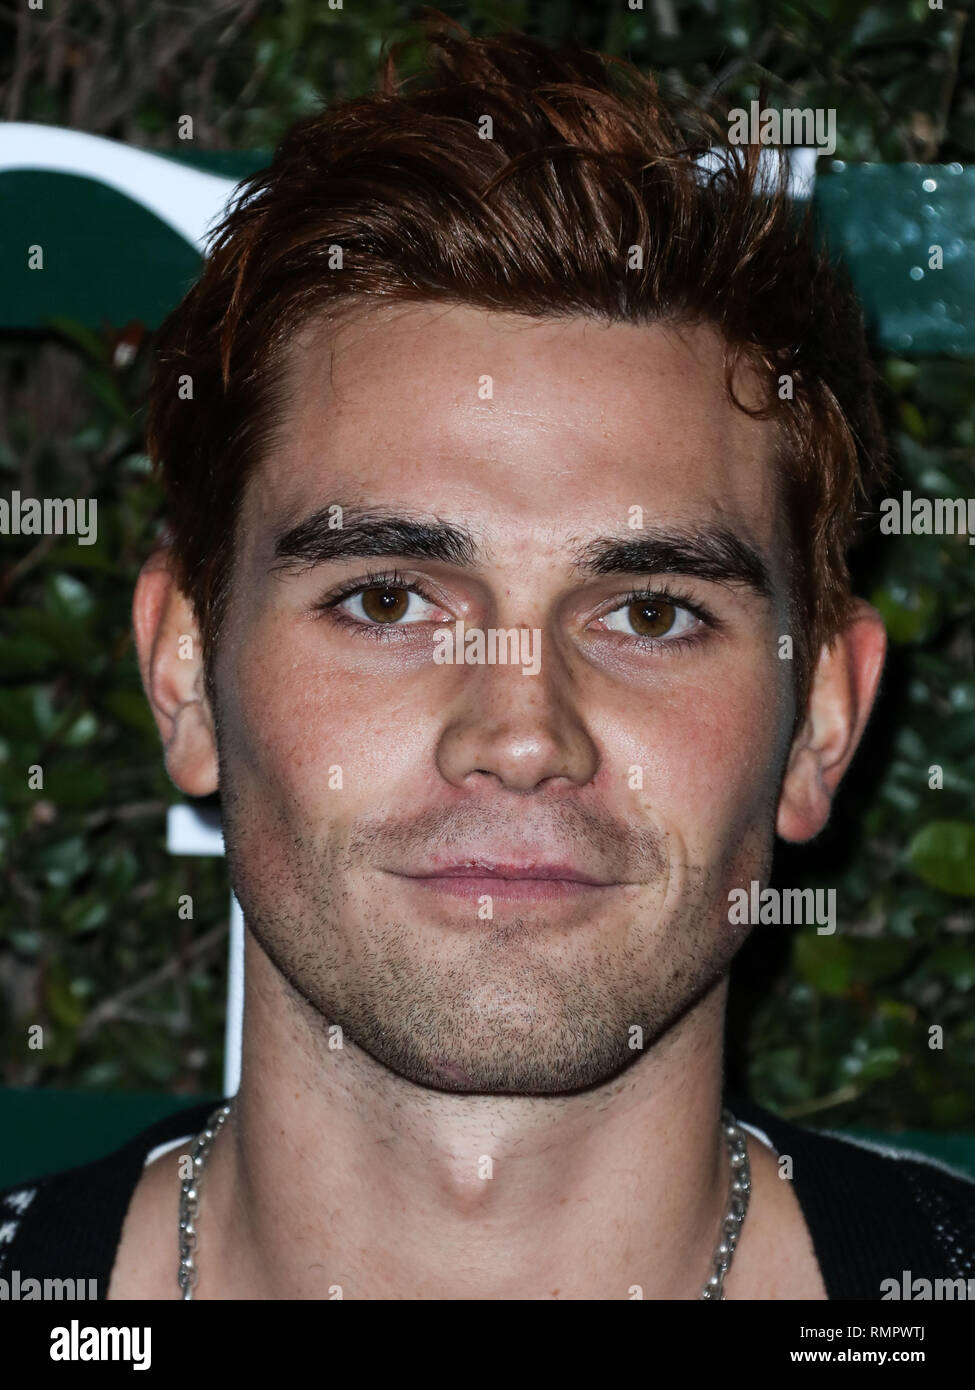 LOS ANGELES, CA, USA - FEBRUARY 15: Actor KJ Apa arrives at Teen Vogue's 2019 Young Hollywood Party Presented By Snap held at the Los Angeles Theatre on February 15, 2019 in Los Angeles, California, United States. (Photo by Xavier Collin/Image Press Agency) - Stock Image